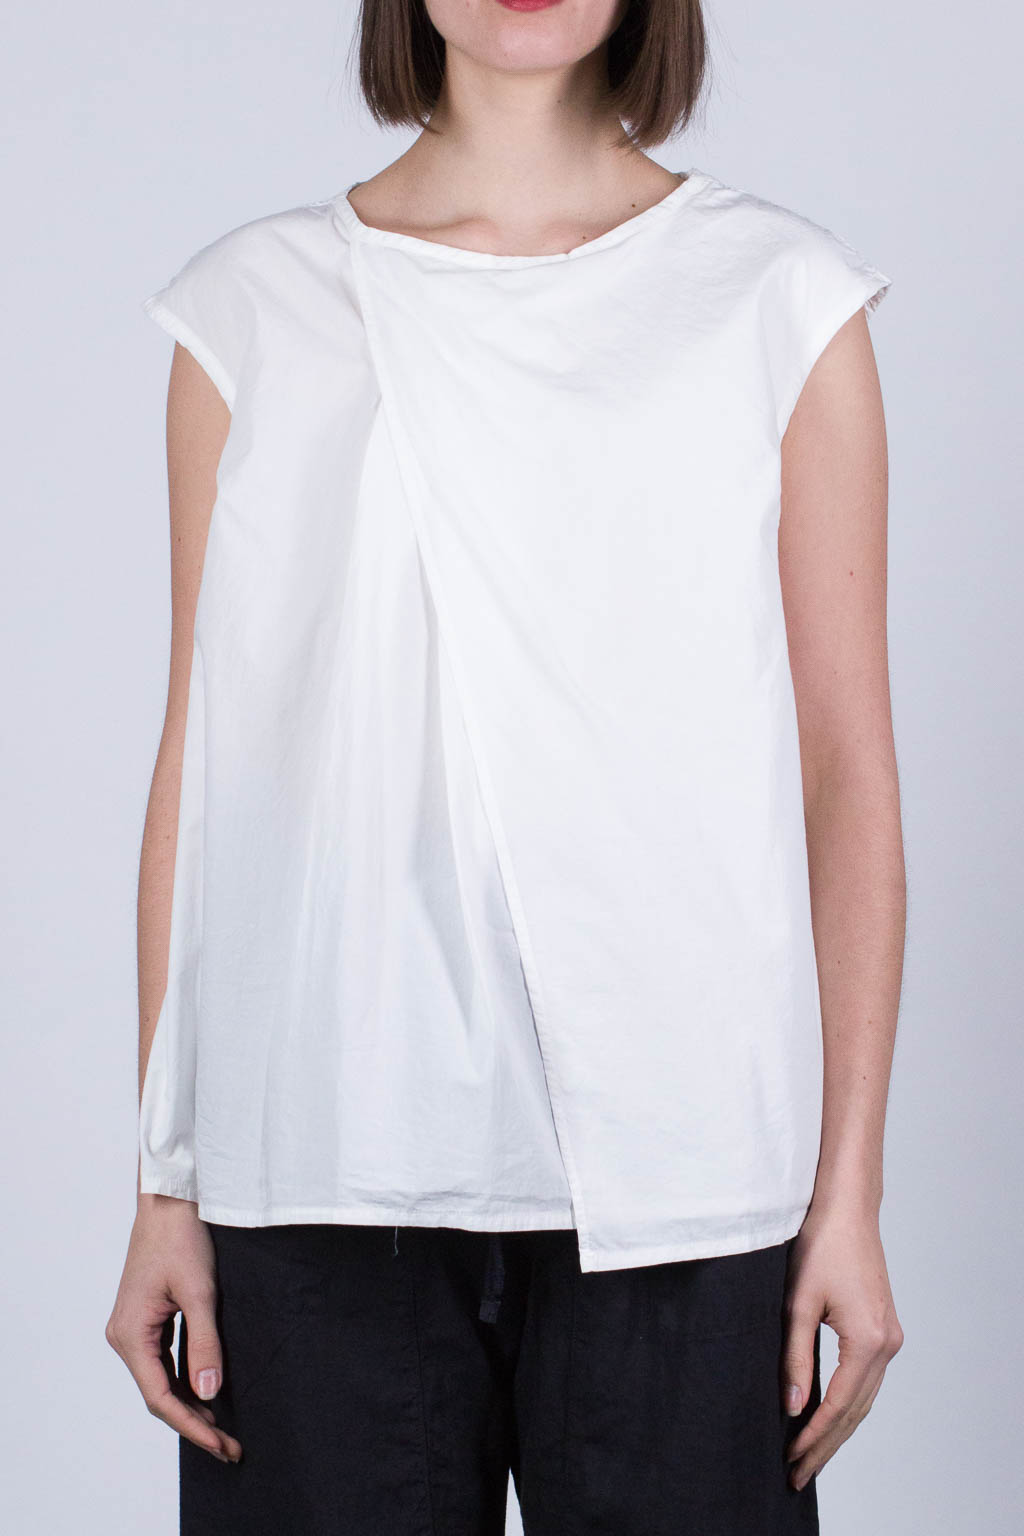 Tuck French Blouse - White